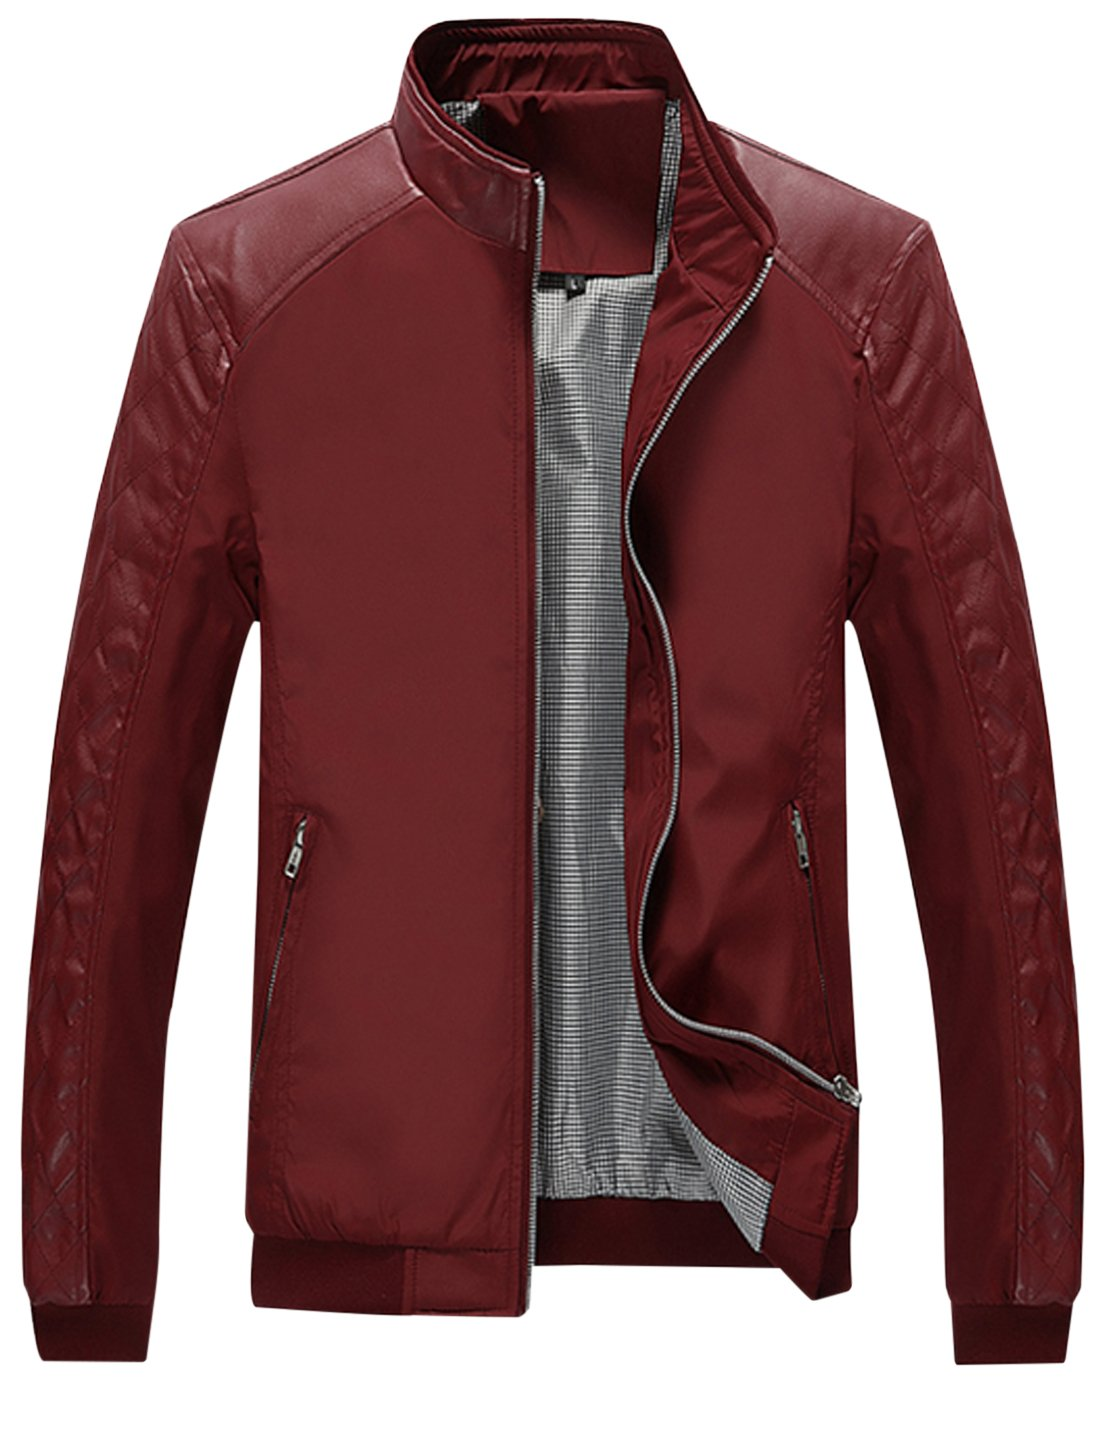 Springrain Men's Casual Stand Collar Slim Leather Sleeve Bomber Jacket (Large, Wine Red) by Springrain